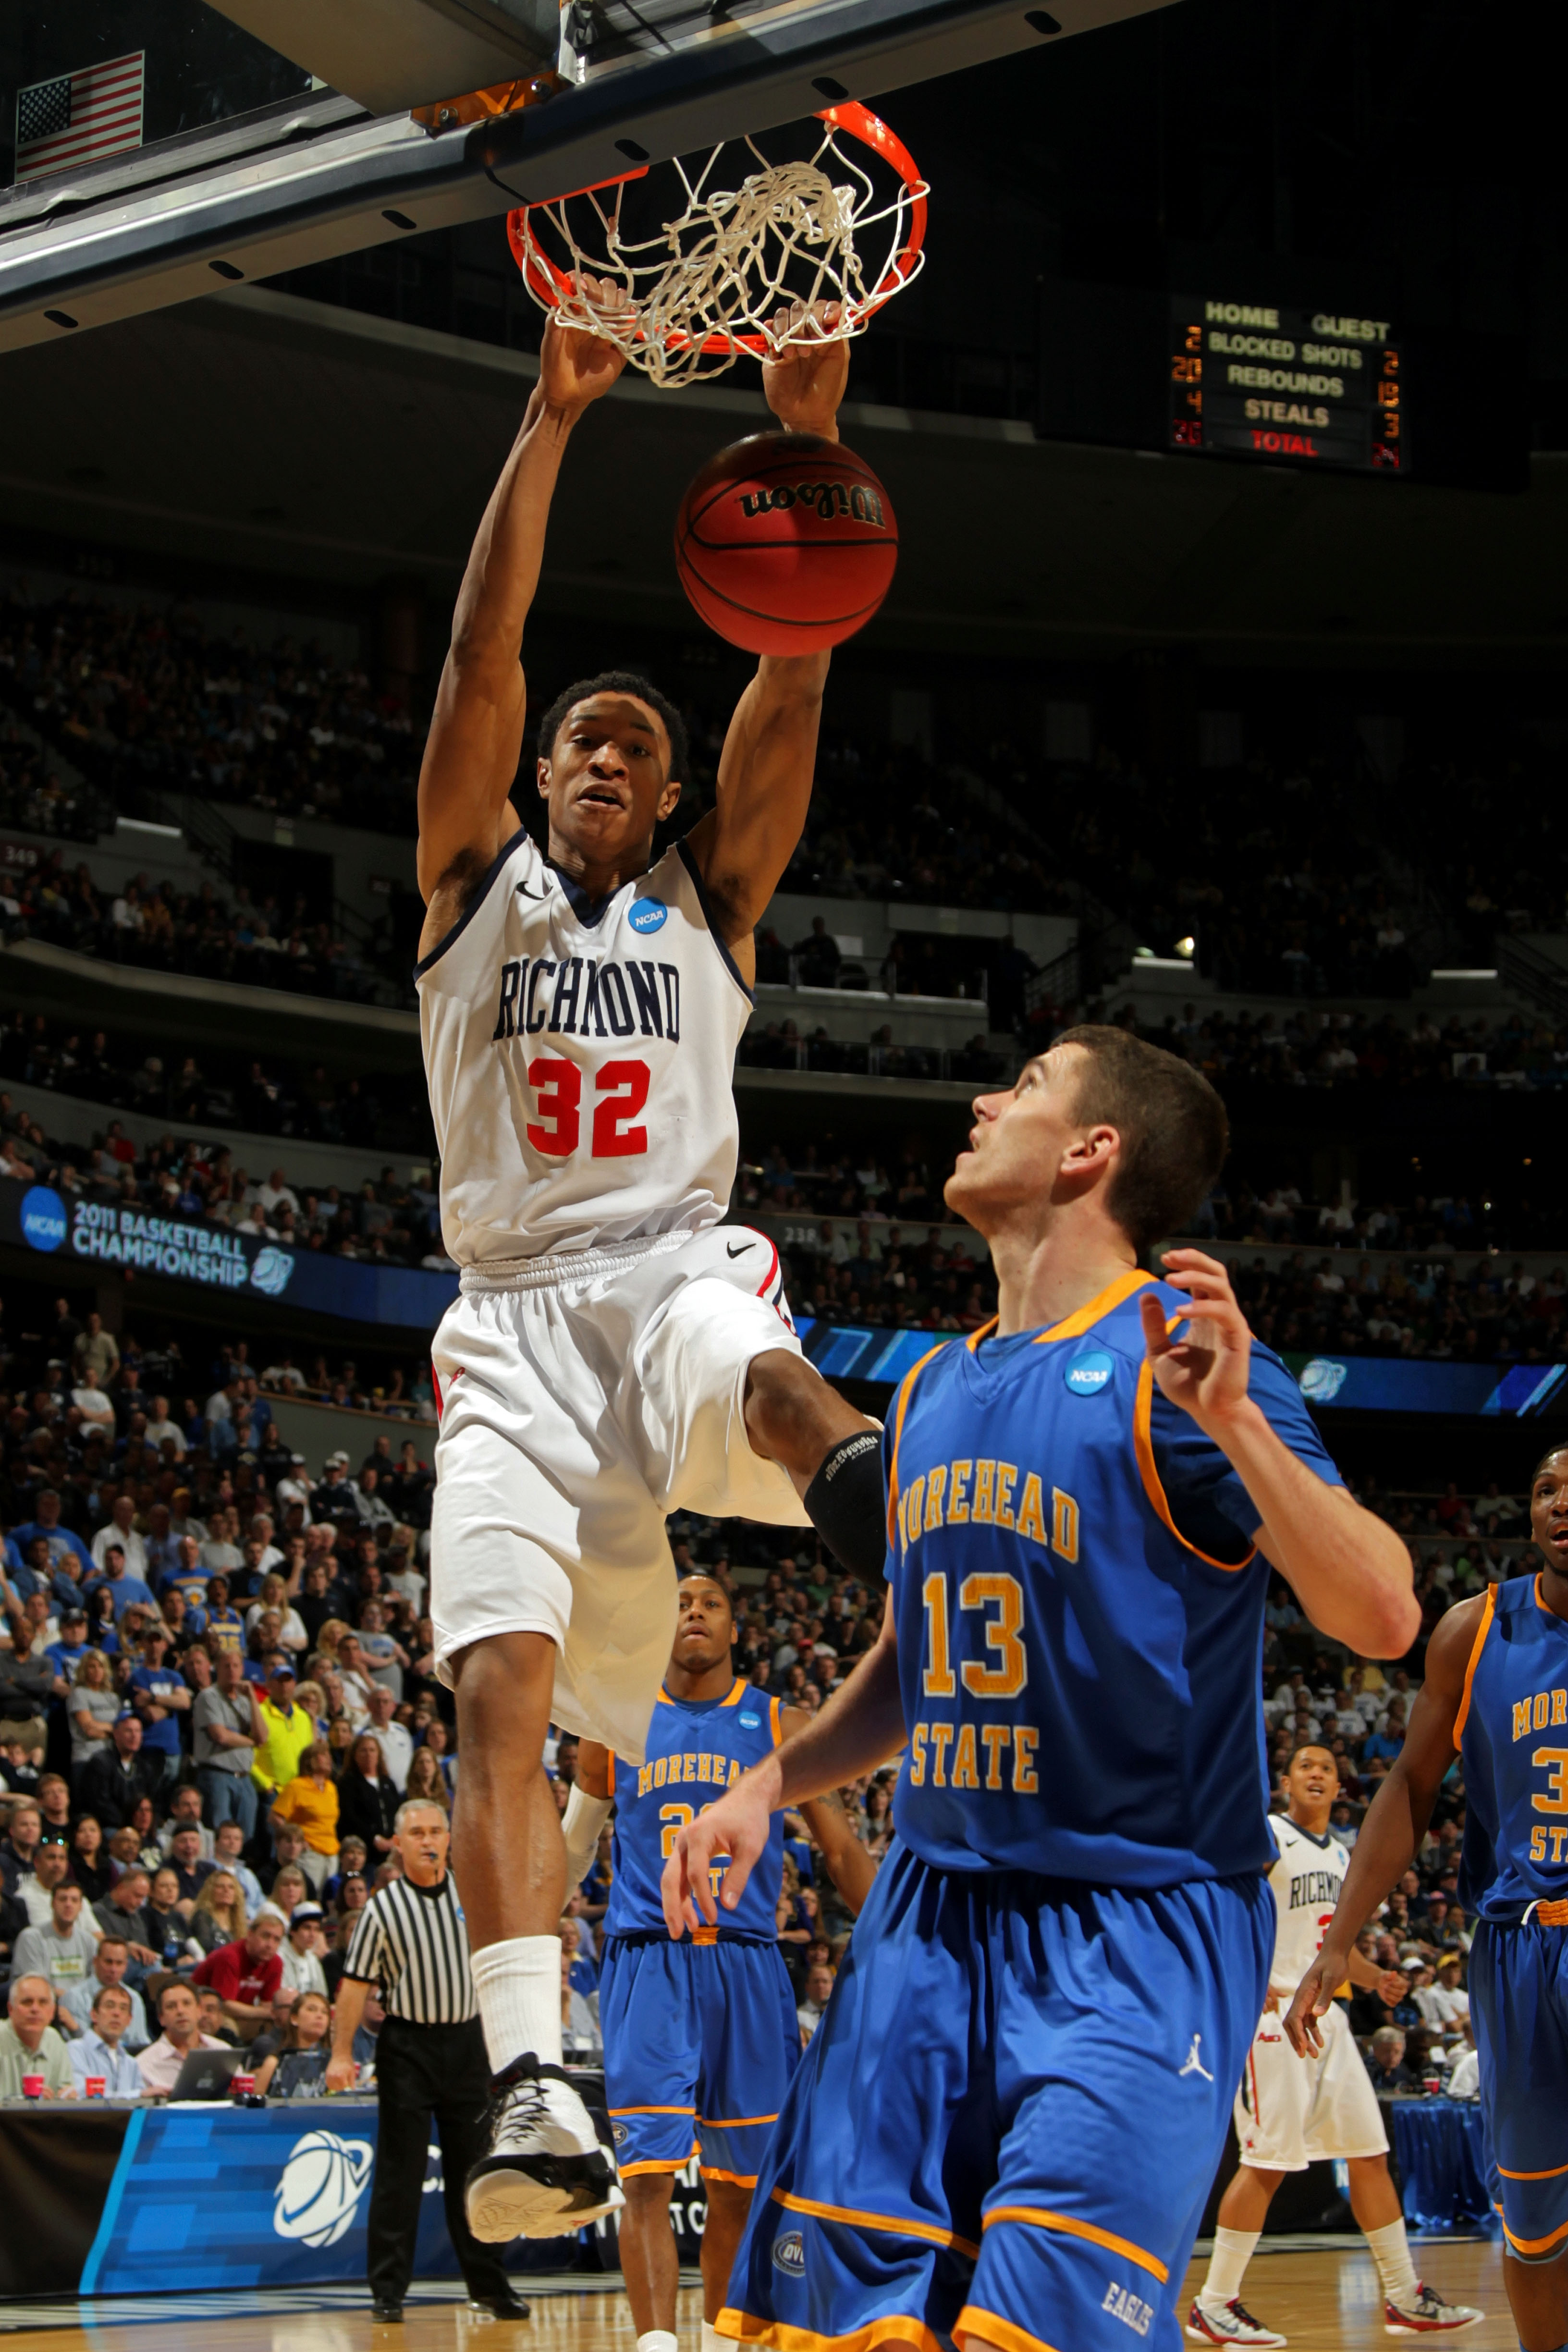 DENVER, CO - MARCH 19:  Justin Harper #32 of the Richmond Spiders dunks the ball against Ty Proffitt #13 of the Morehead State Eagles during the third round of the 2011 NCAA men's basketball tournament at Pepsi Center on March 19, 2011 in Denver, Colorado